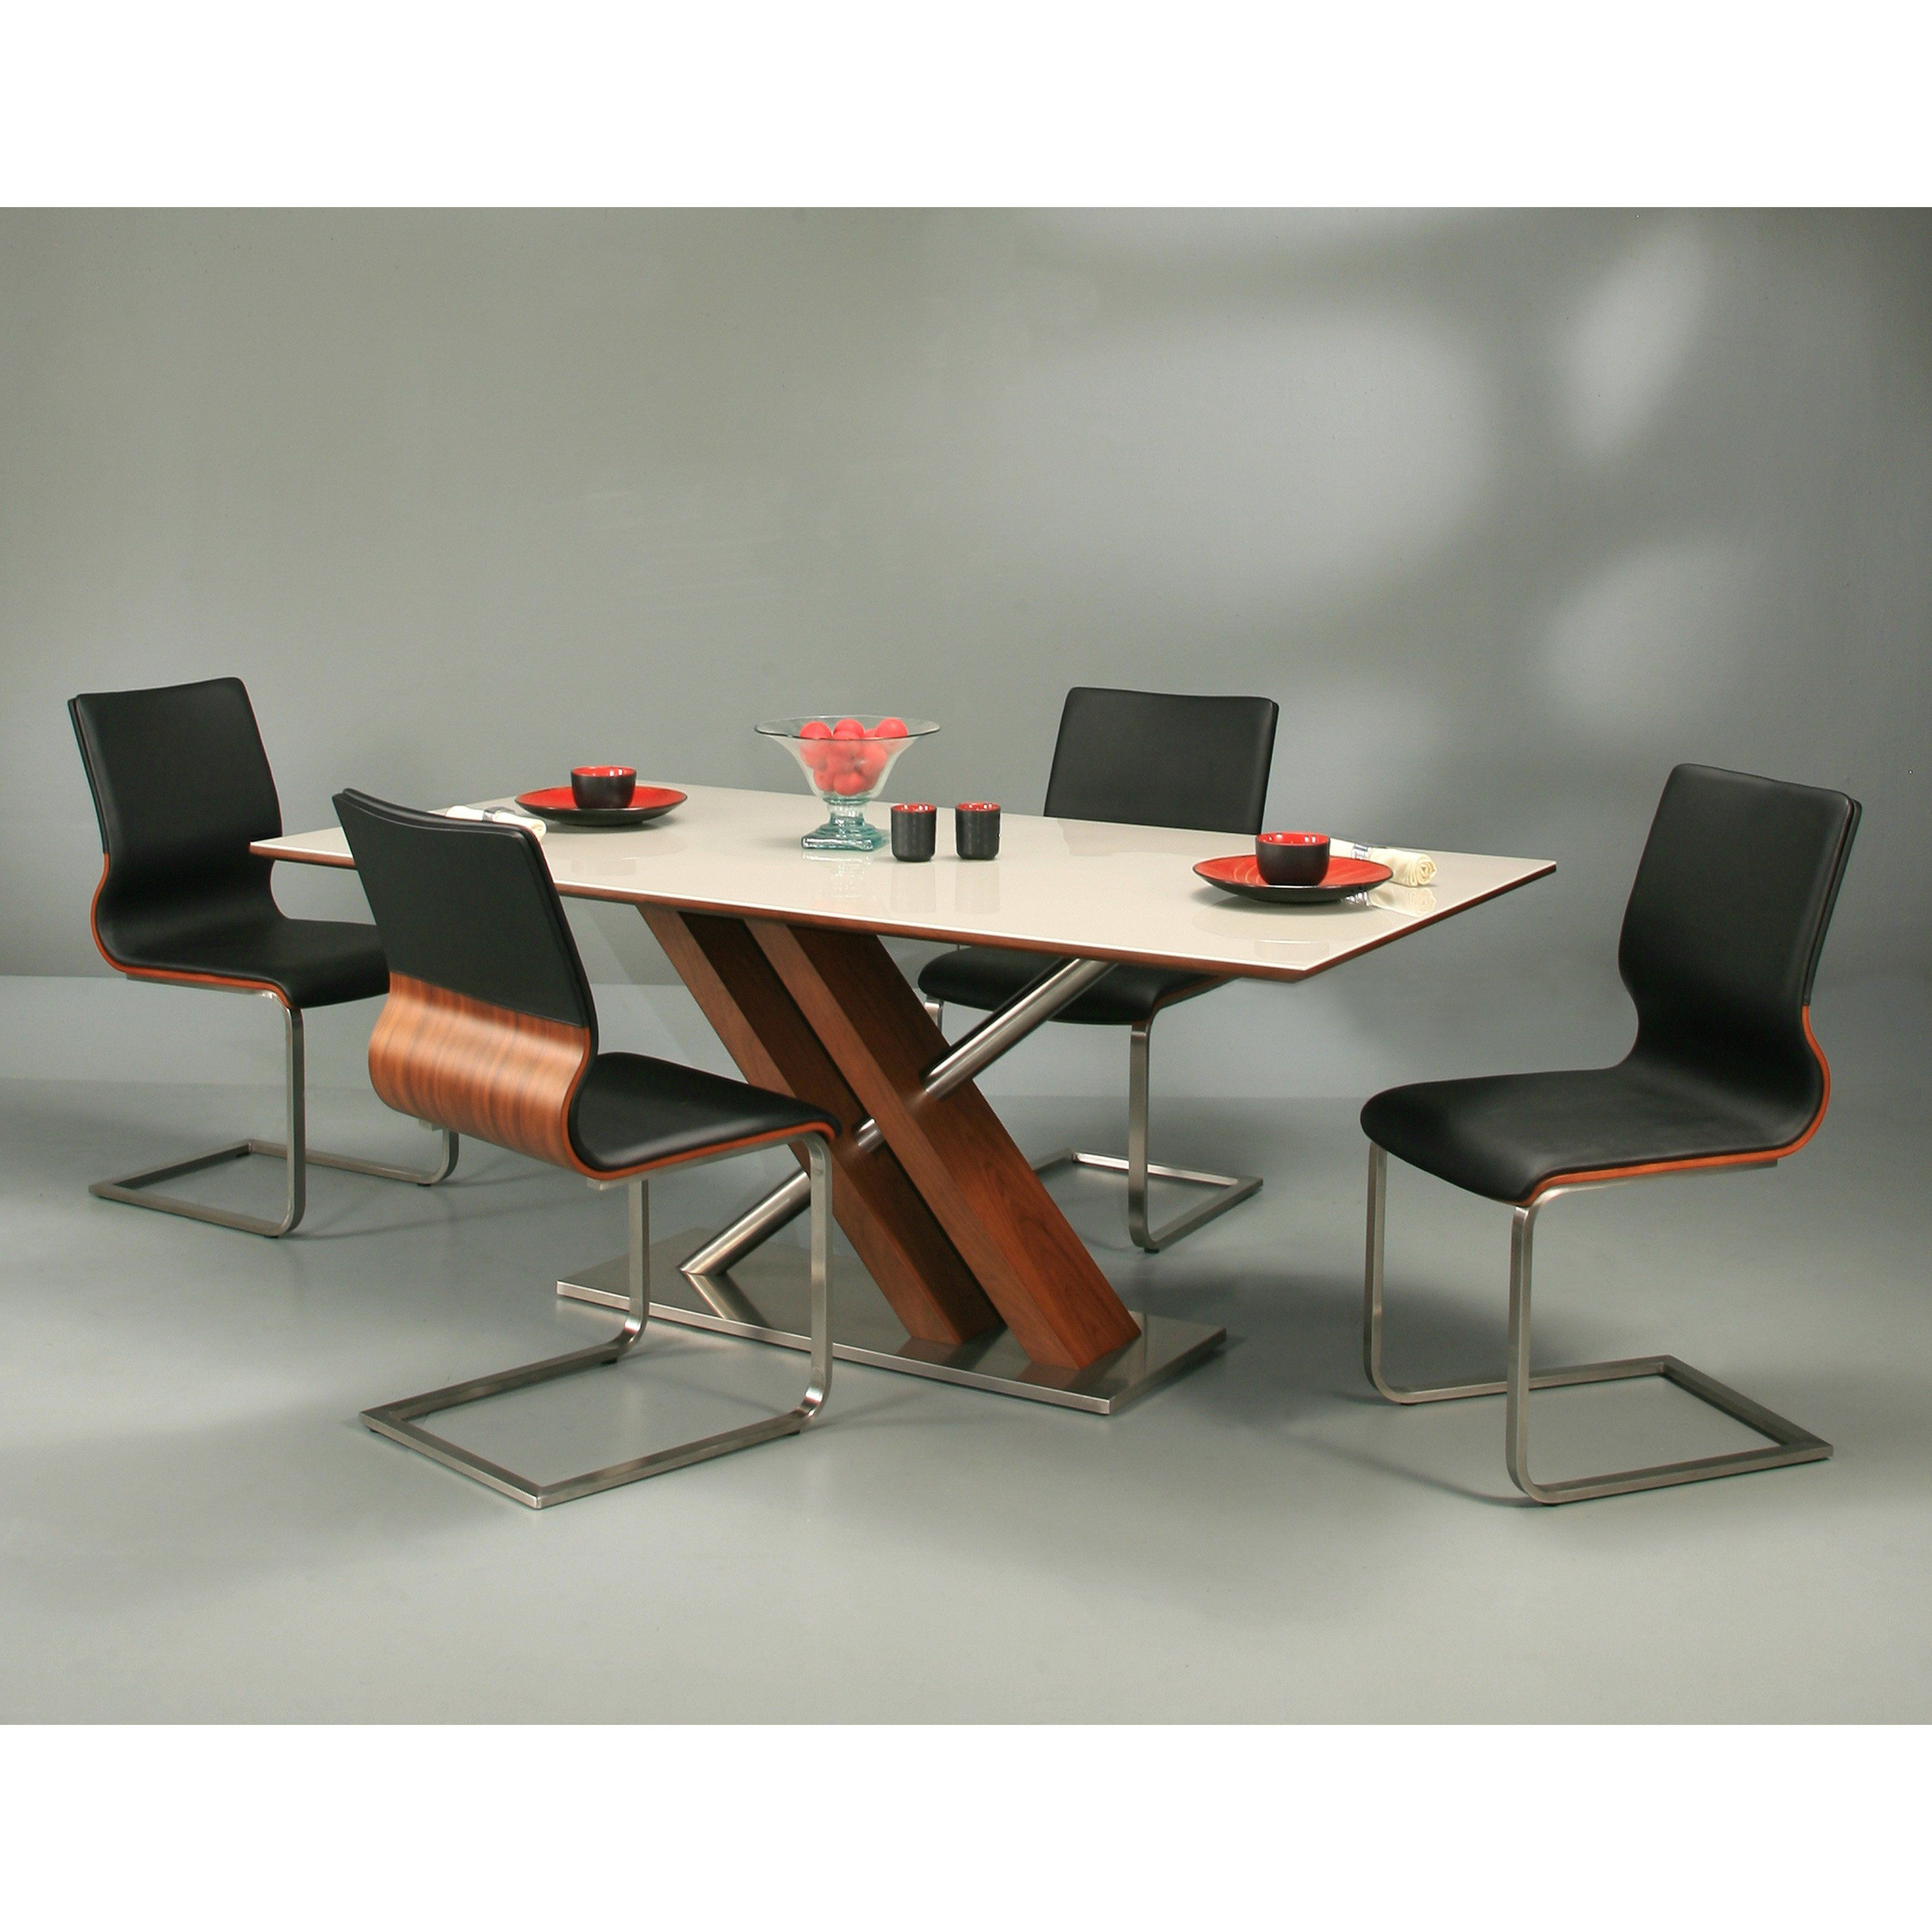 Have To Have It Pastel Furnture Charlize 5 Piece Walnut Dining Table Set With Charlize Chairs Black 2 Walnut Dining Table Dining Table Setting Dining Table [ 3200 x 3200 Pixel ]